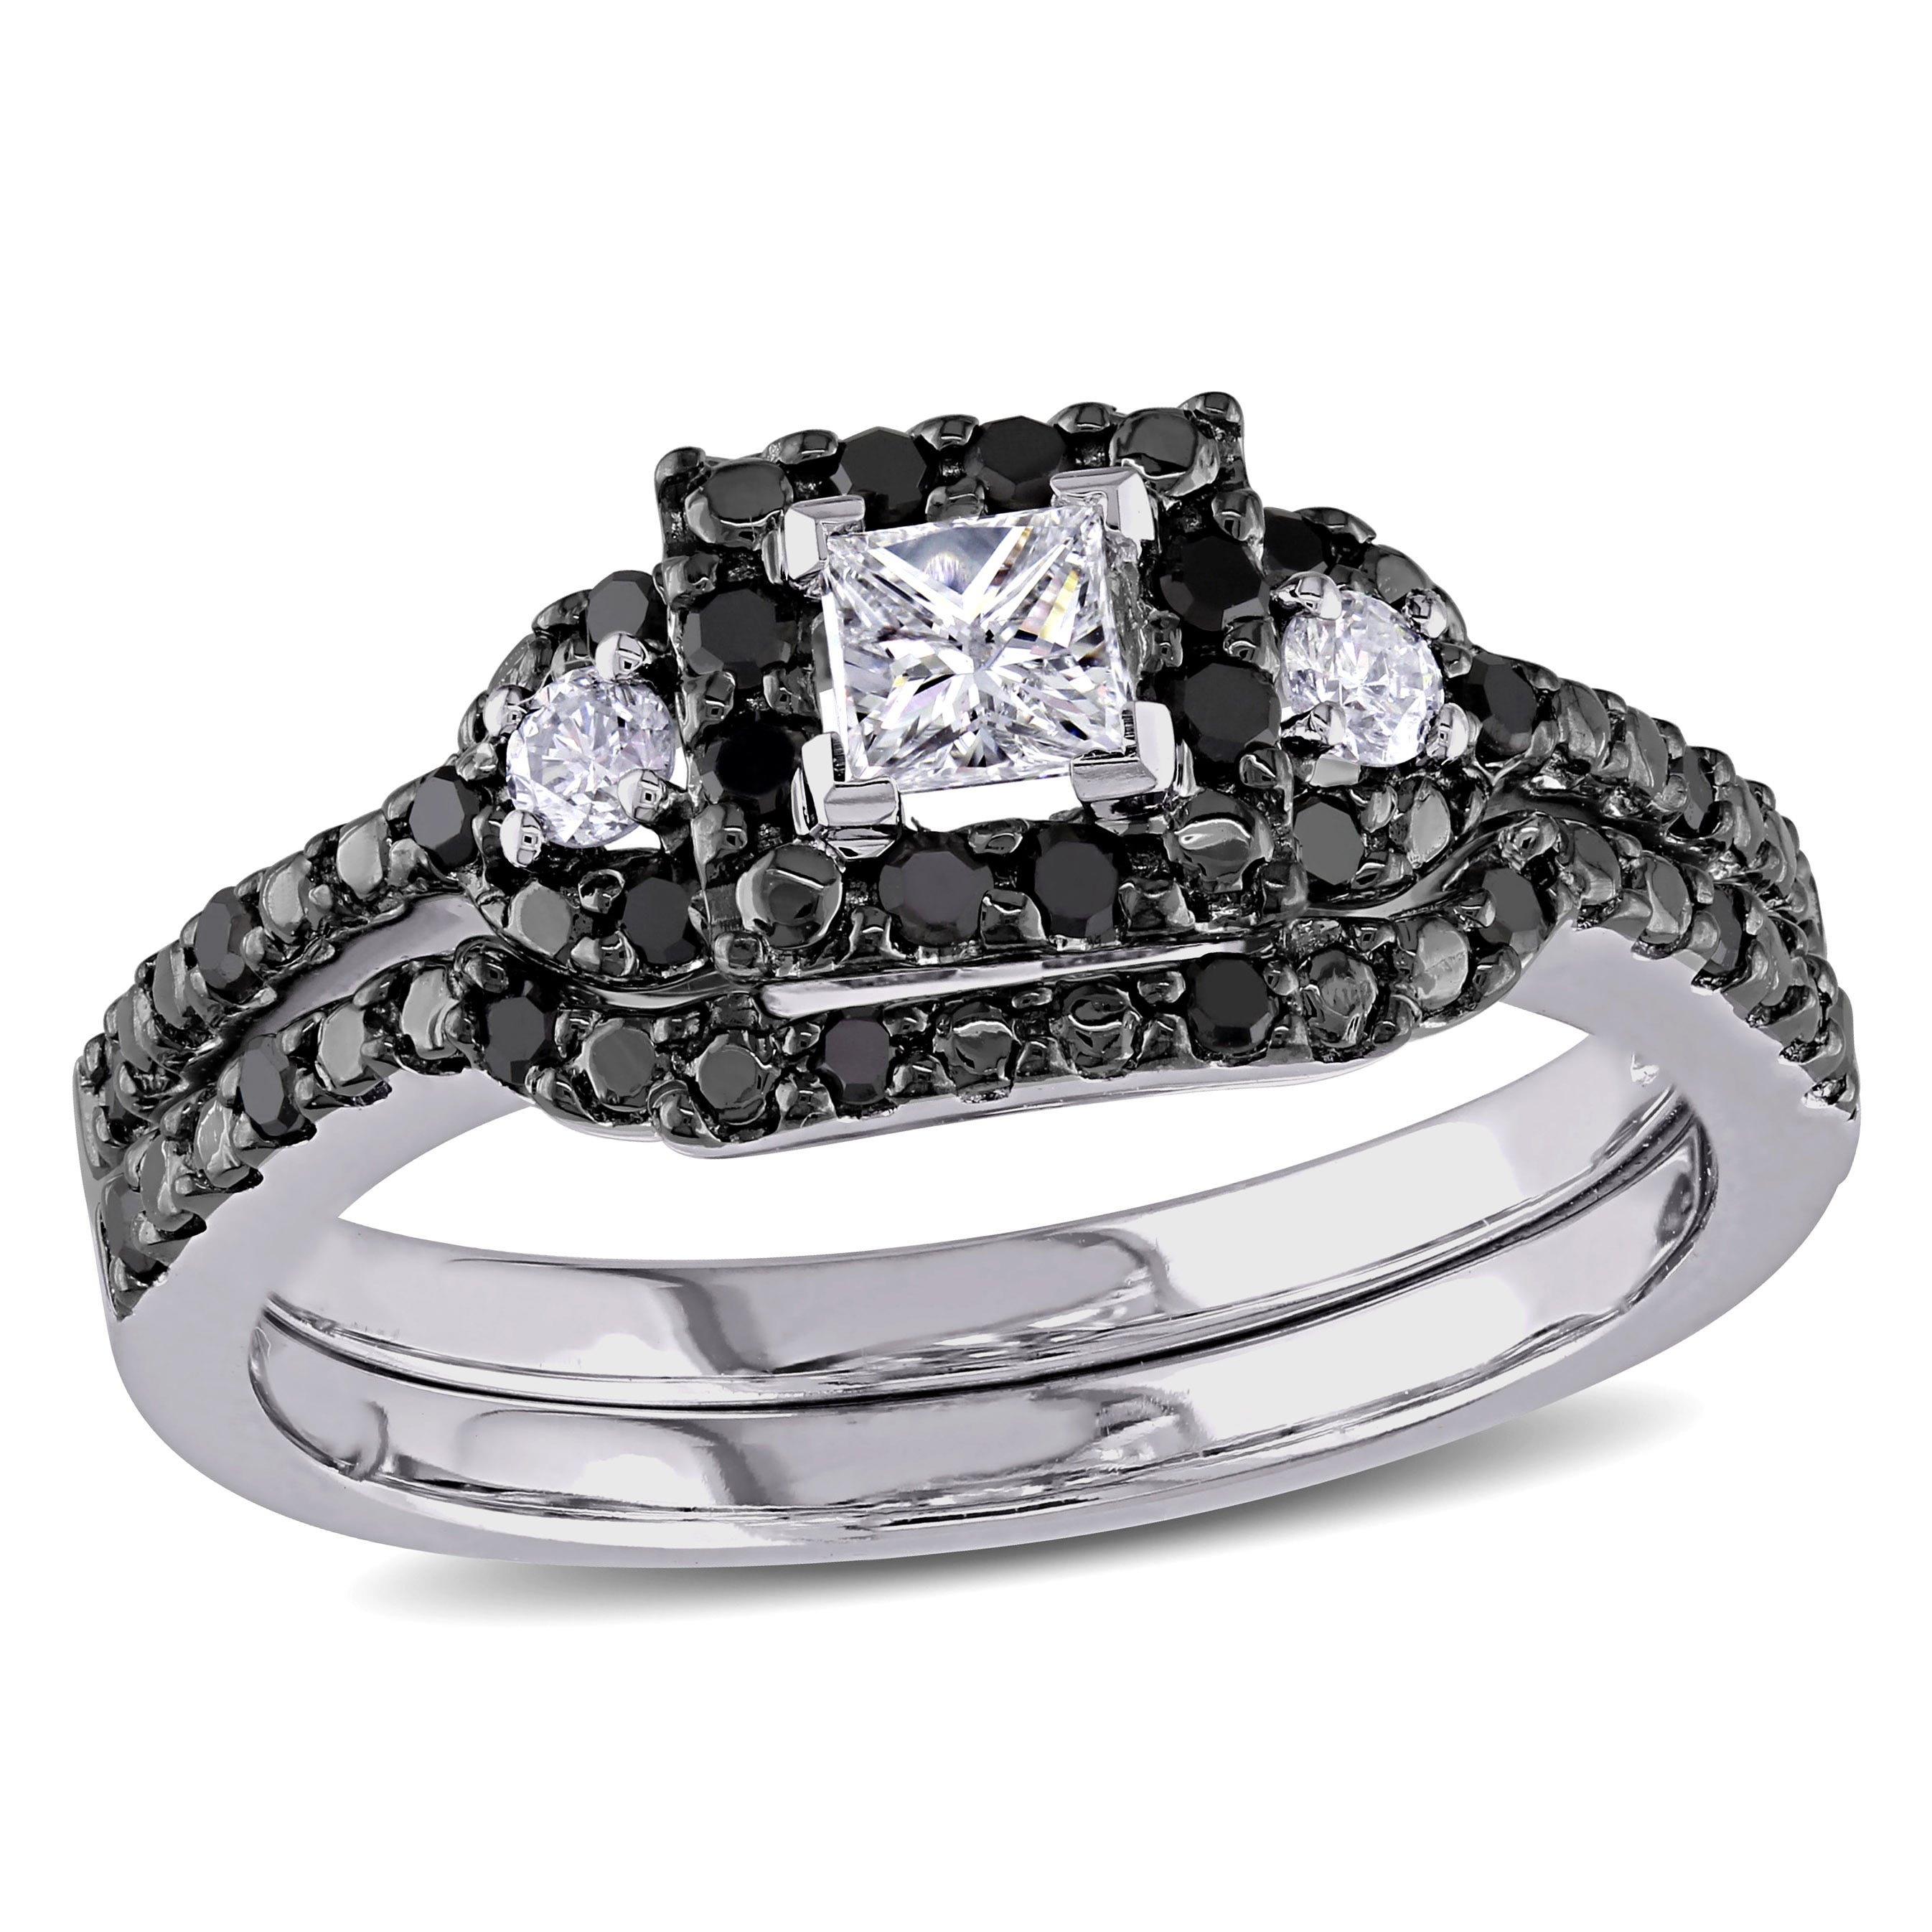 Princess-Cut Black Diamond & Diamond Halo 1/2ctw. Engagement Ring + Matching Band